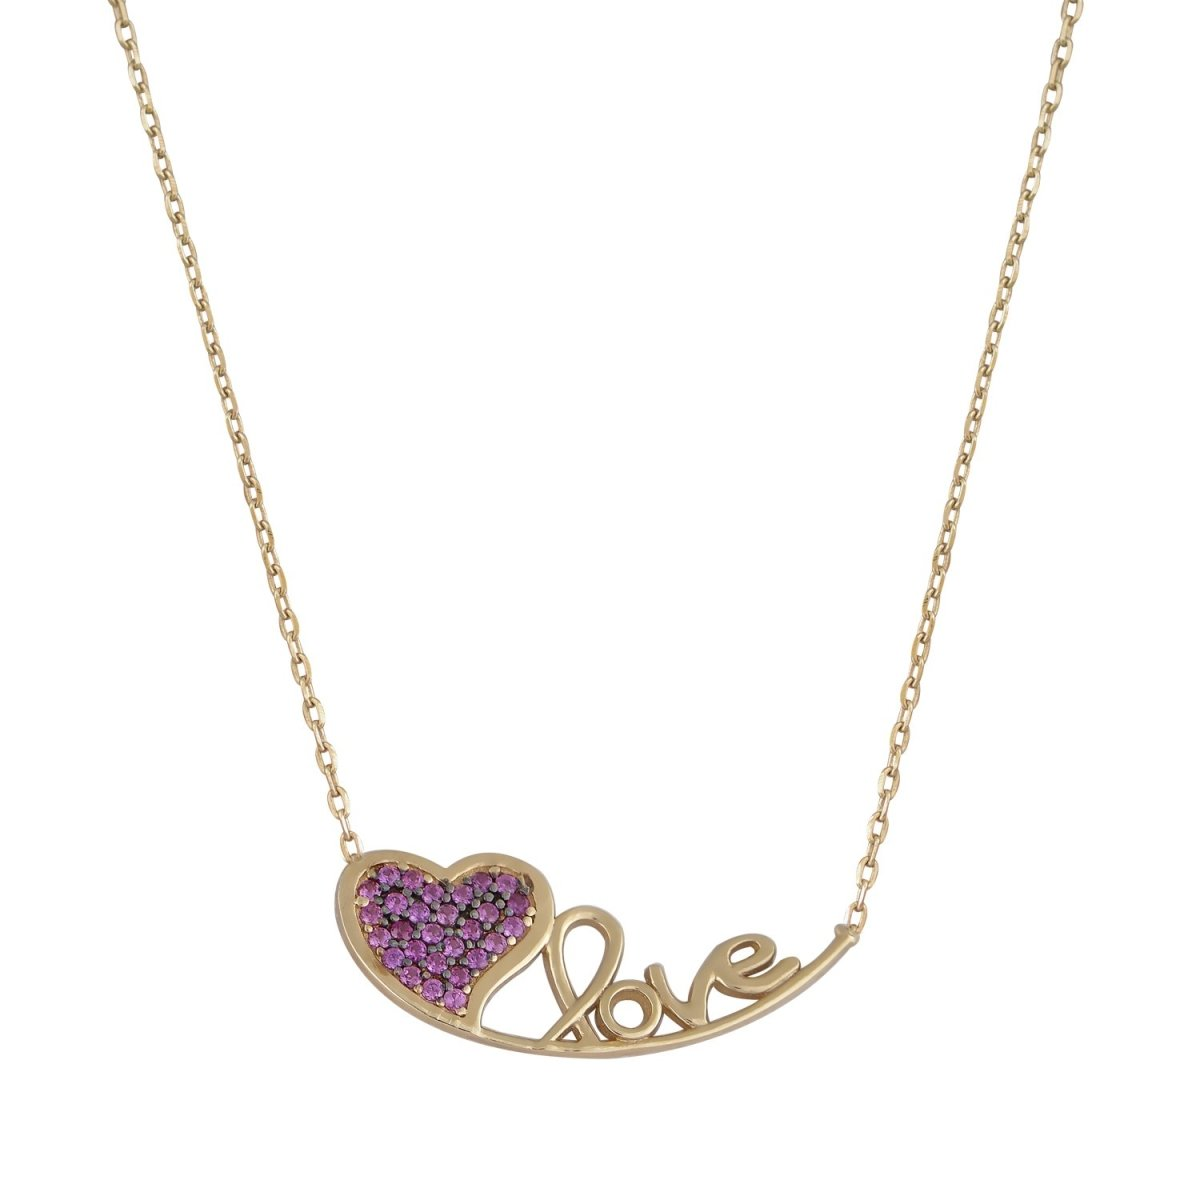 G508 Love Necklace with Heart in 14ct Gold - Goldy Jewelry Store